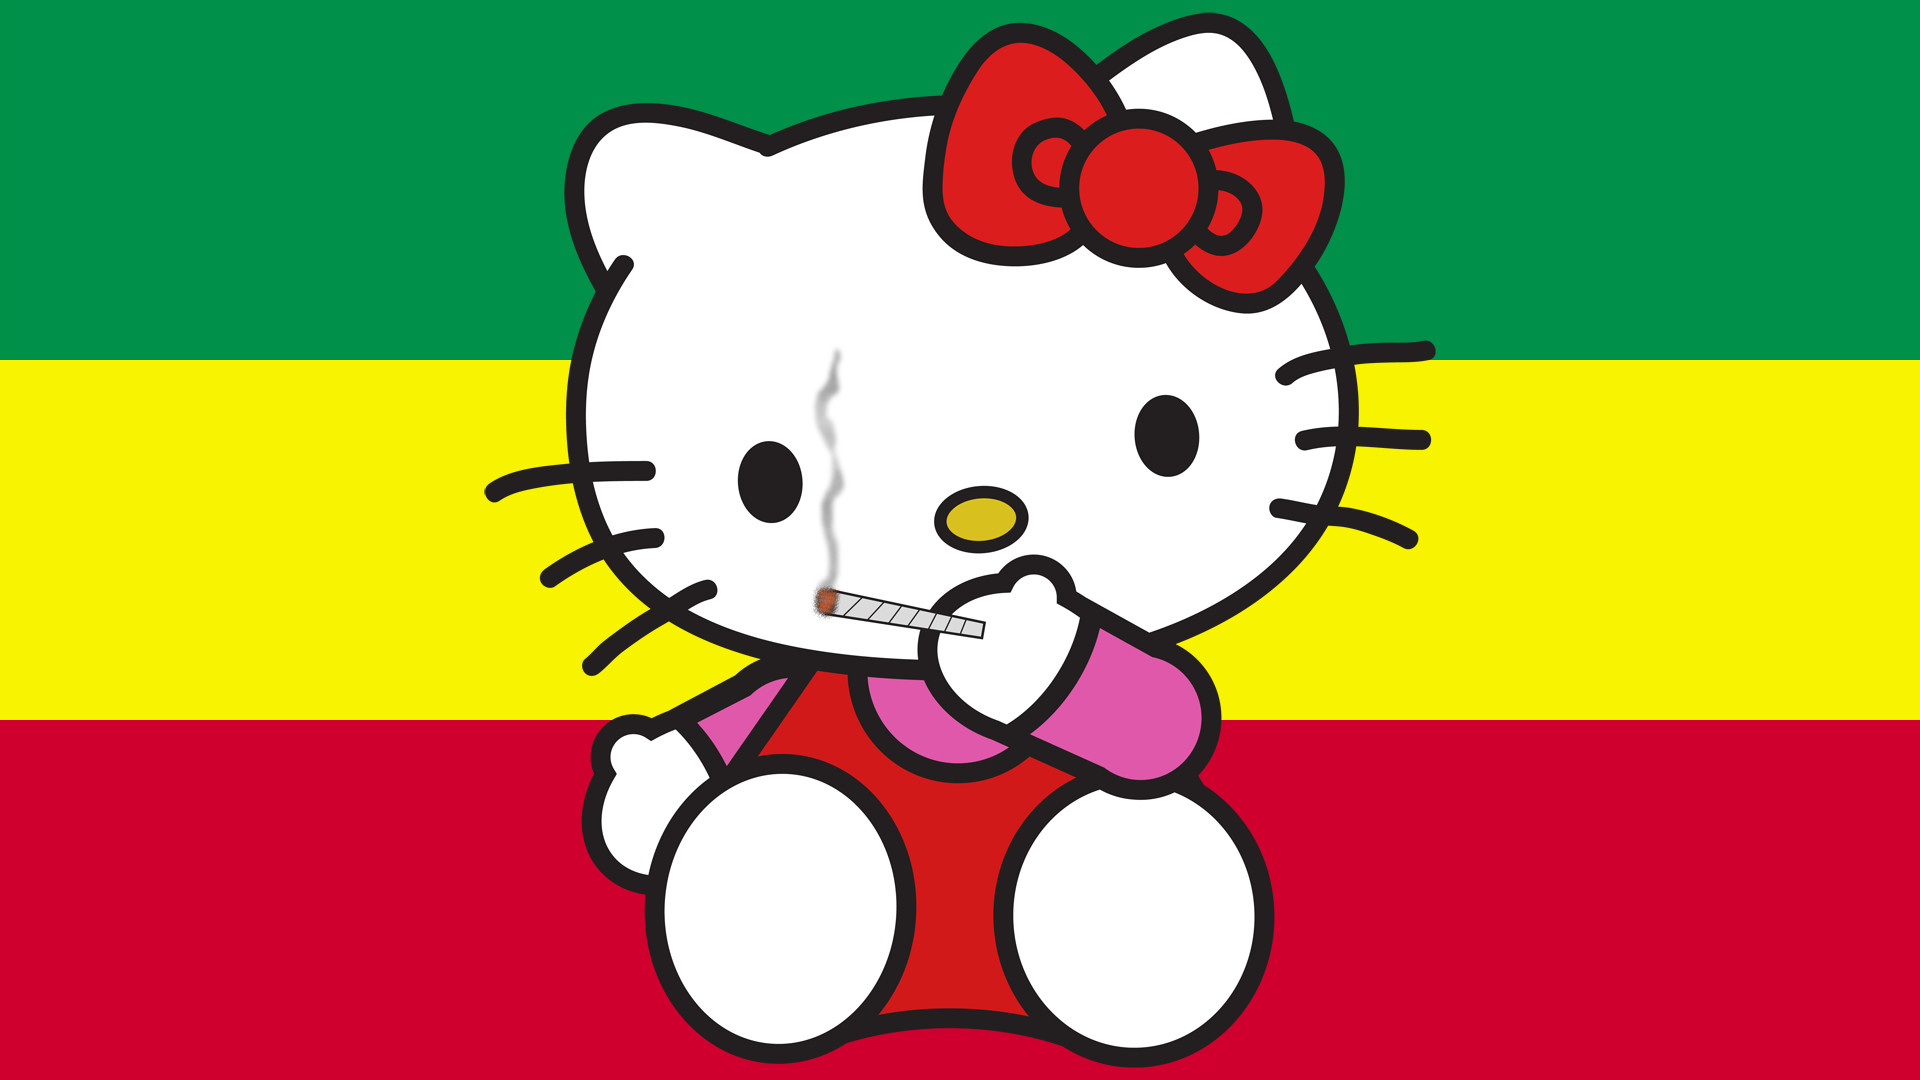 Wonderful Wallpaper Hello Kitty 1080p - 968630-hd-wallpaper-hello-kitty-1920x1080-1080p  Gallery_47694.jpg